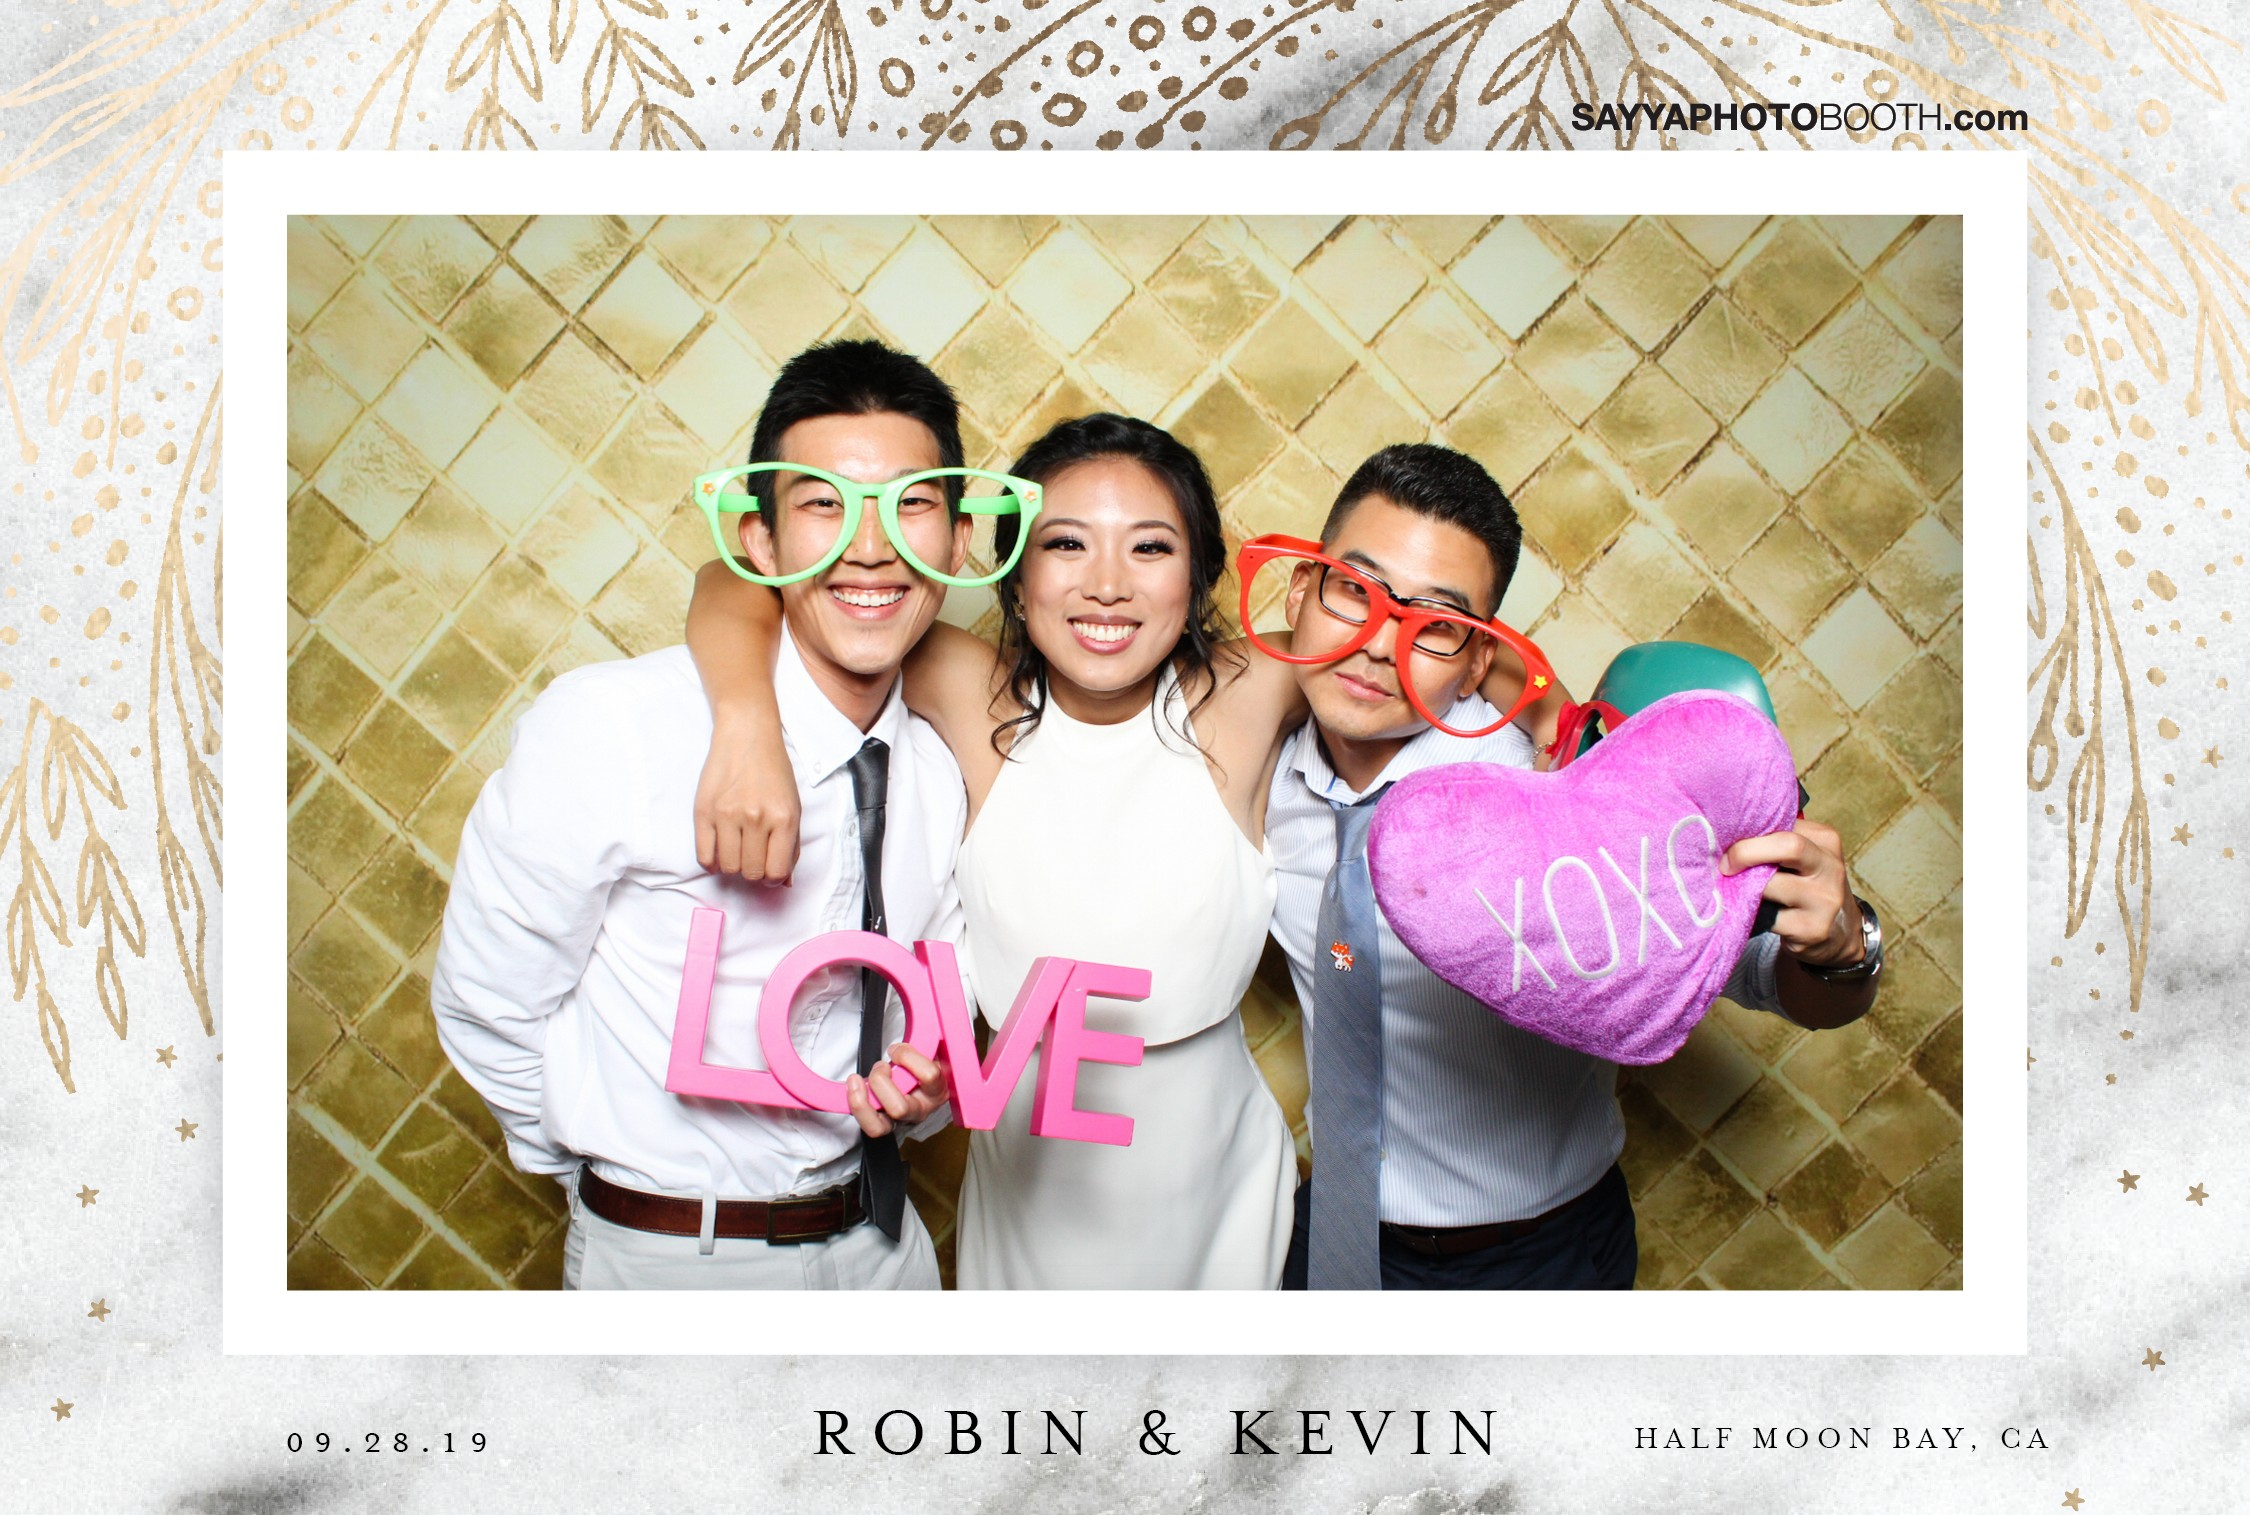 Robin & Kevin's Wedding